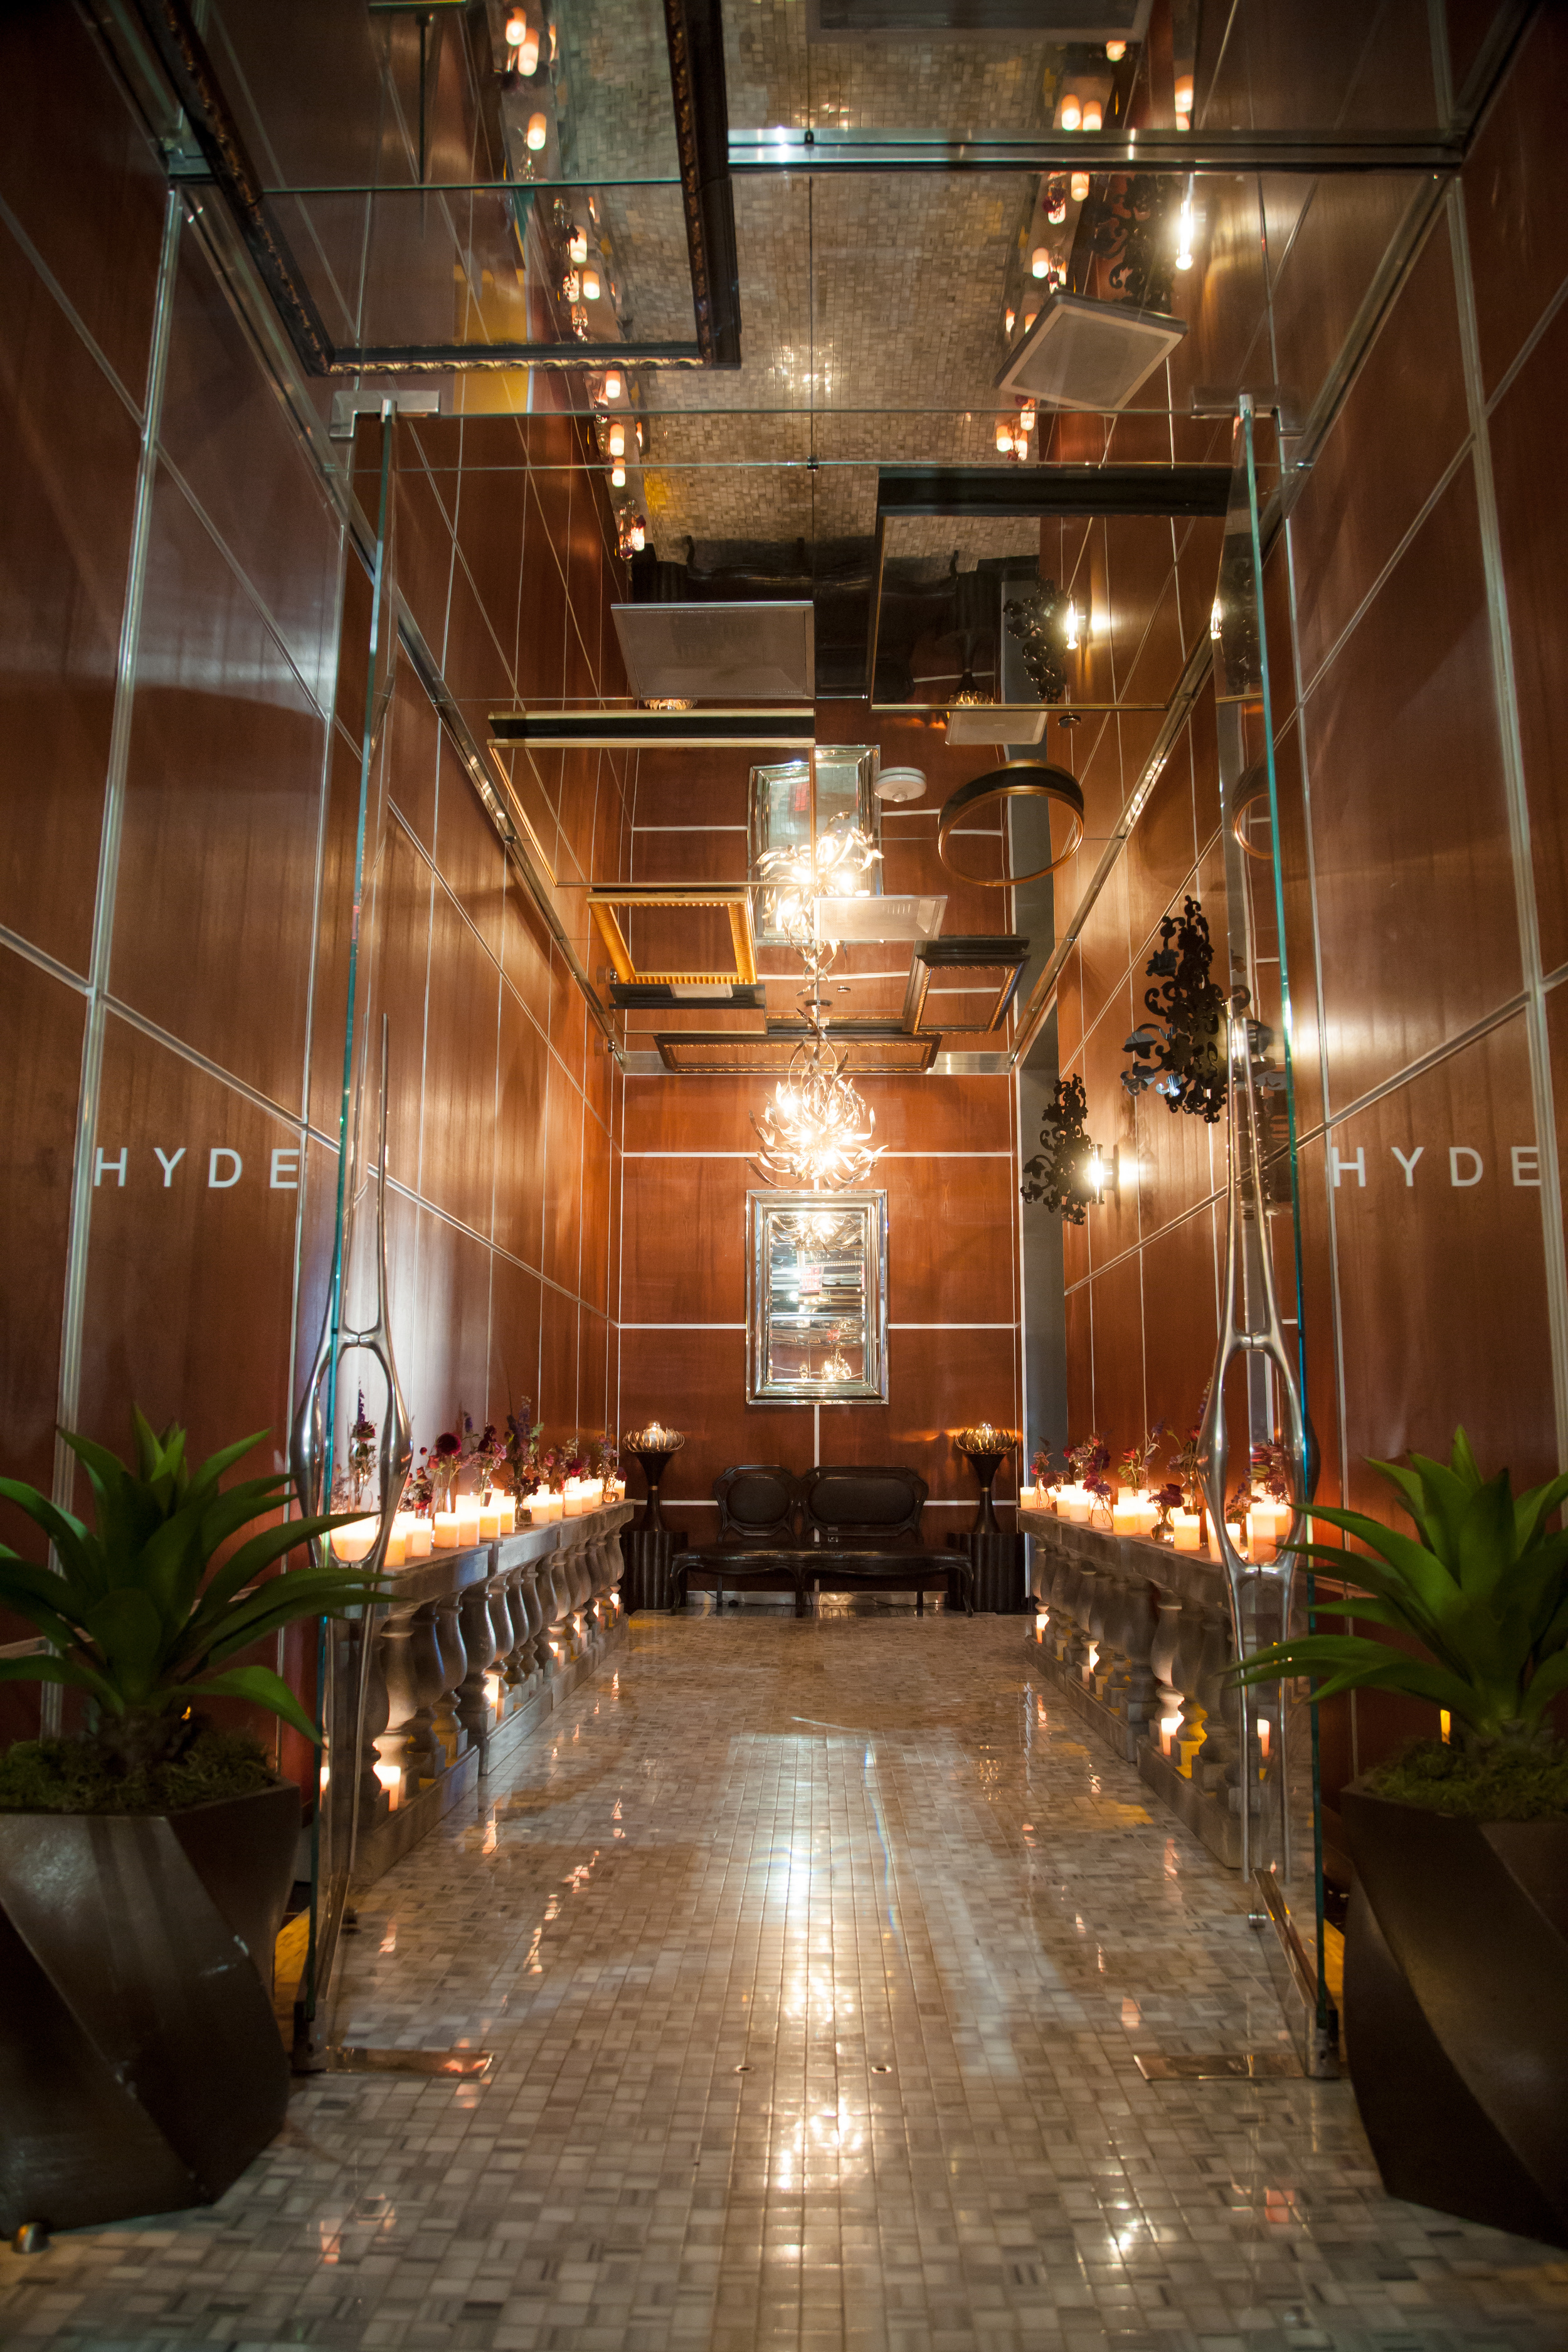 Candlelit entry into Hyde Bellagio for a wedding showcase. Las Vegas Wedding Planner and Event Designer Andrea Eppolito produces an Atonement themed party for The Knot Rocks JCK 2016 for The Knot Pro. Photo by Adam Frazier.